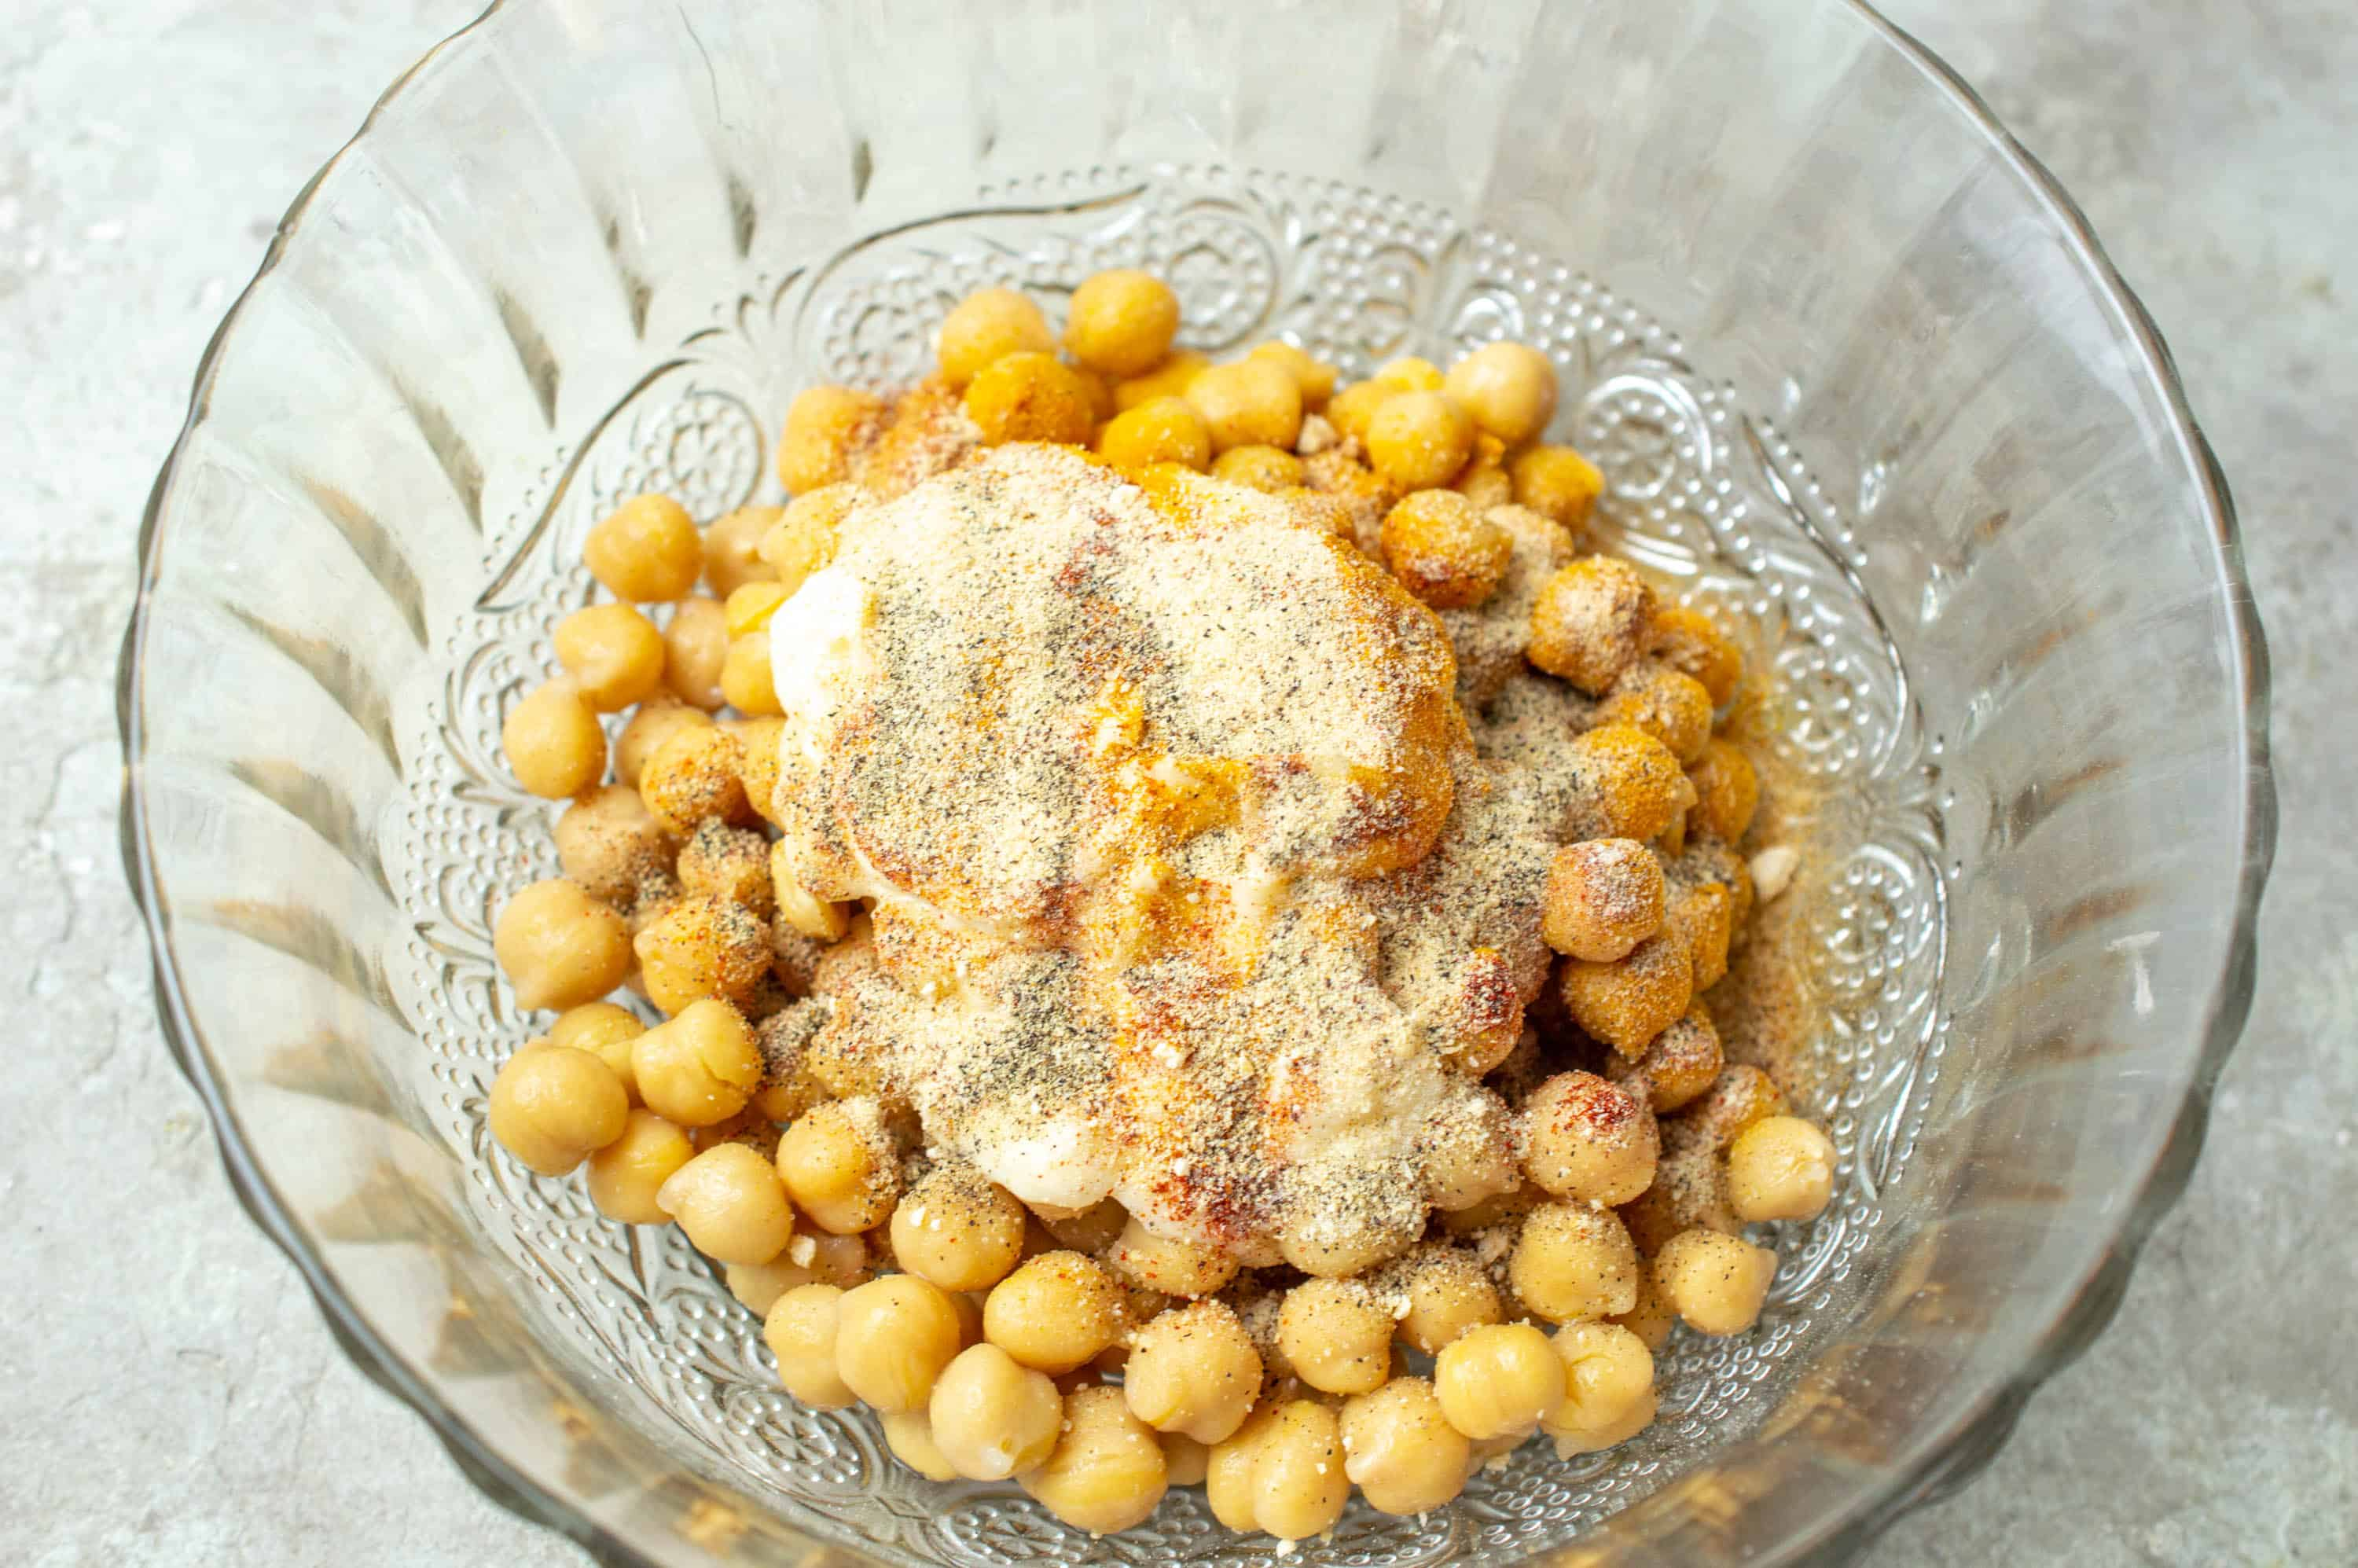 chickpeas in bowl with mayonnaise and spices